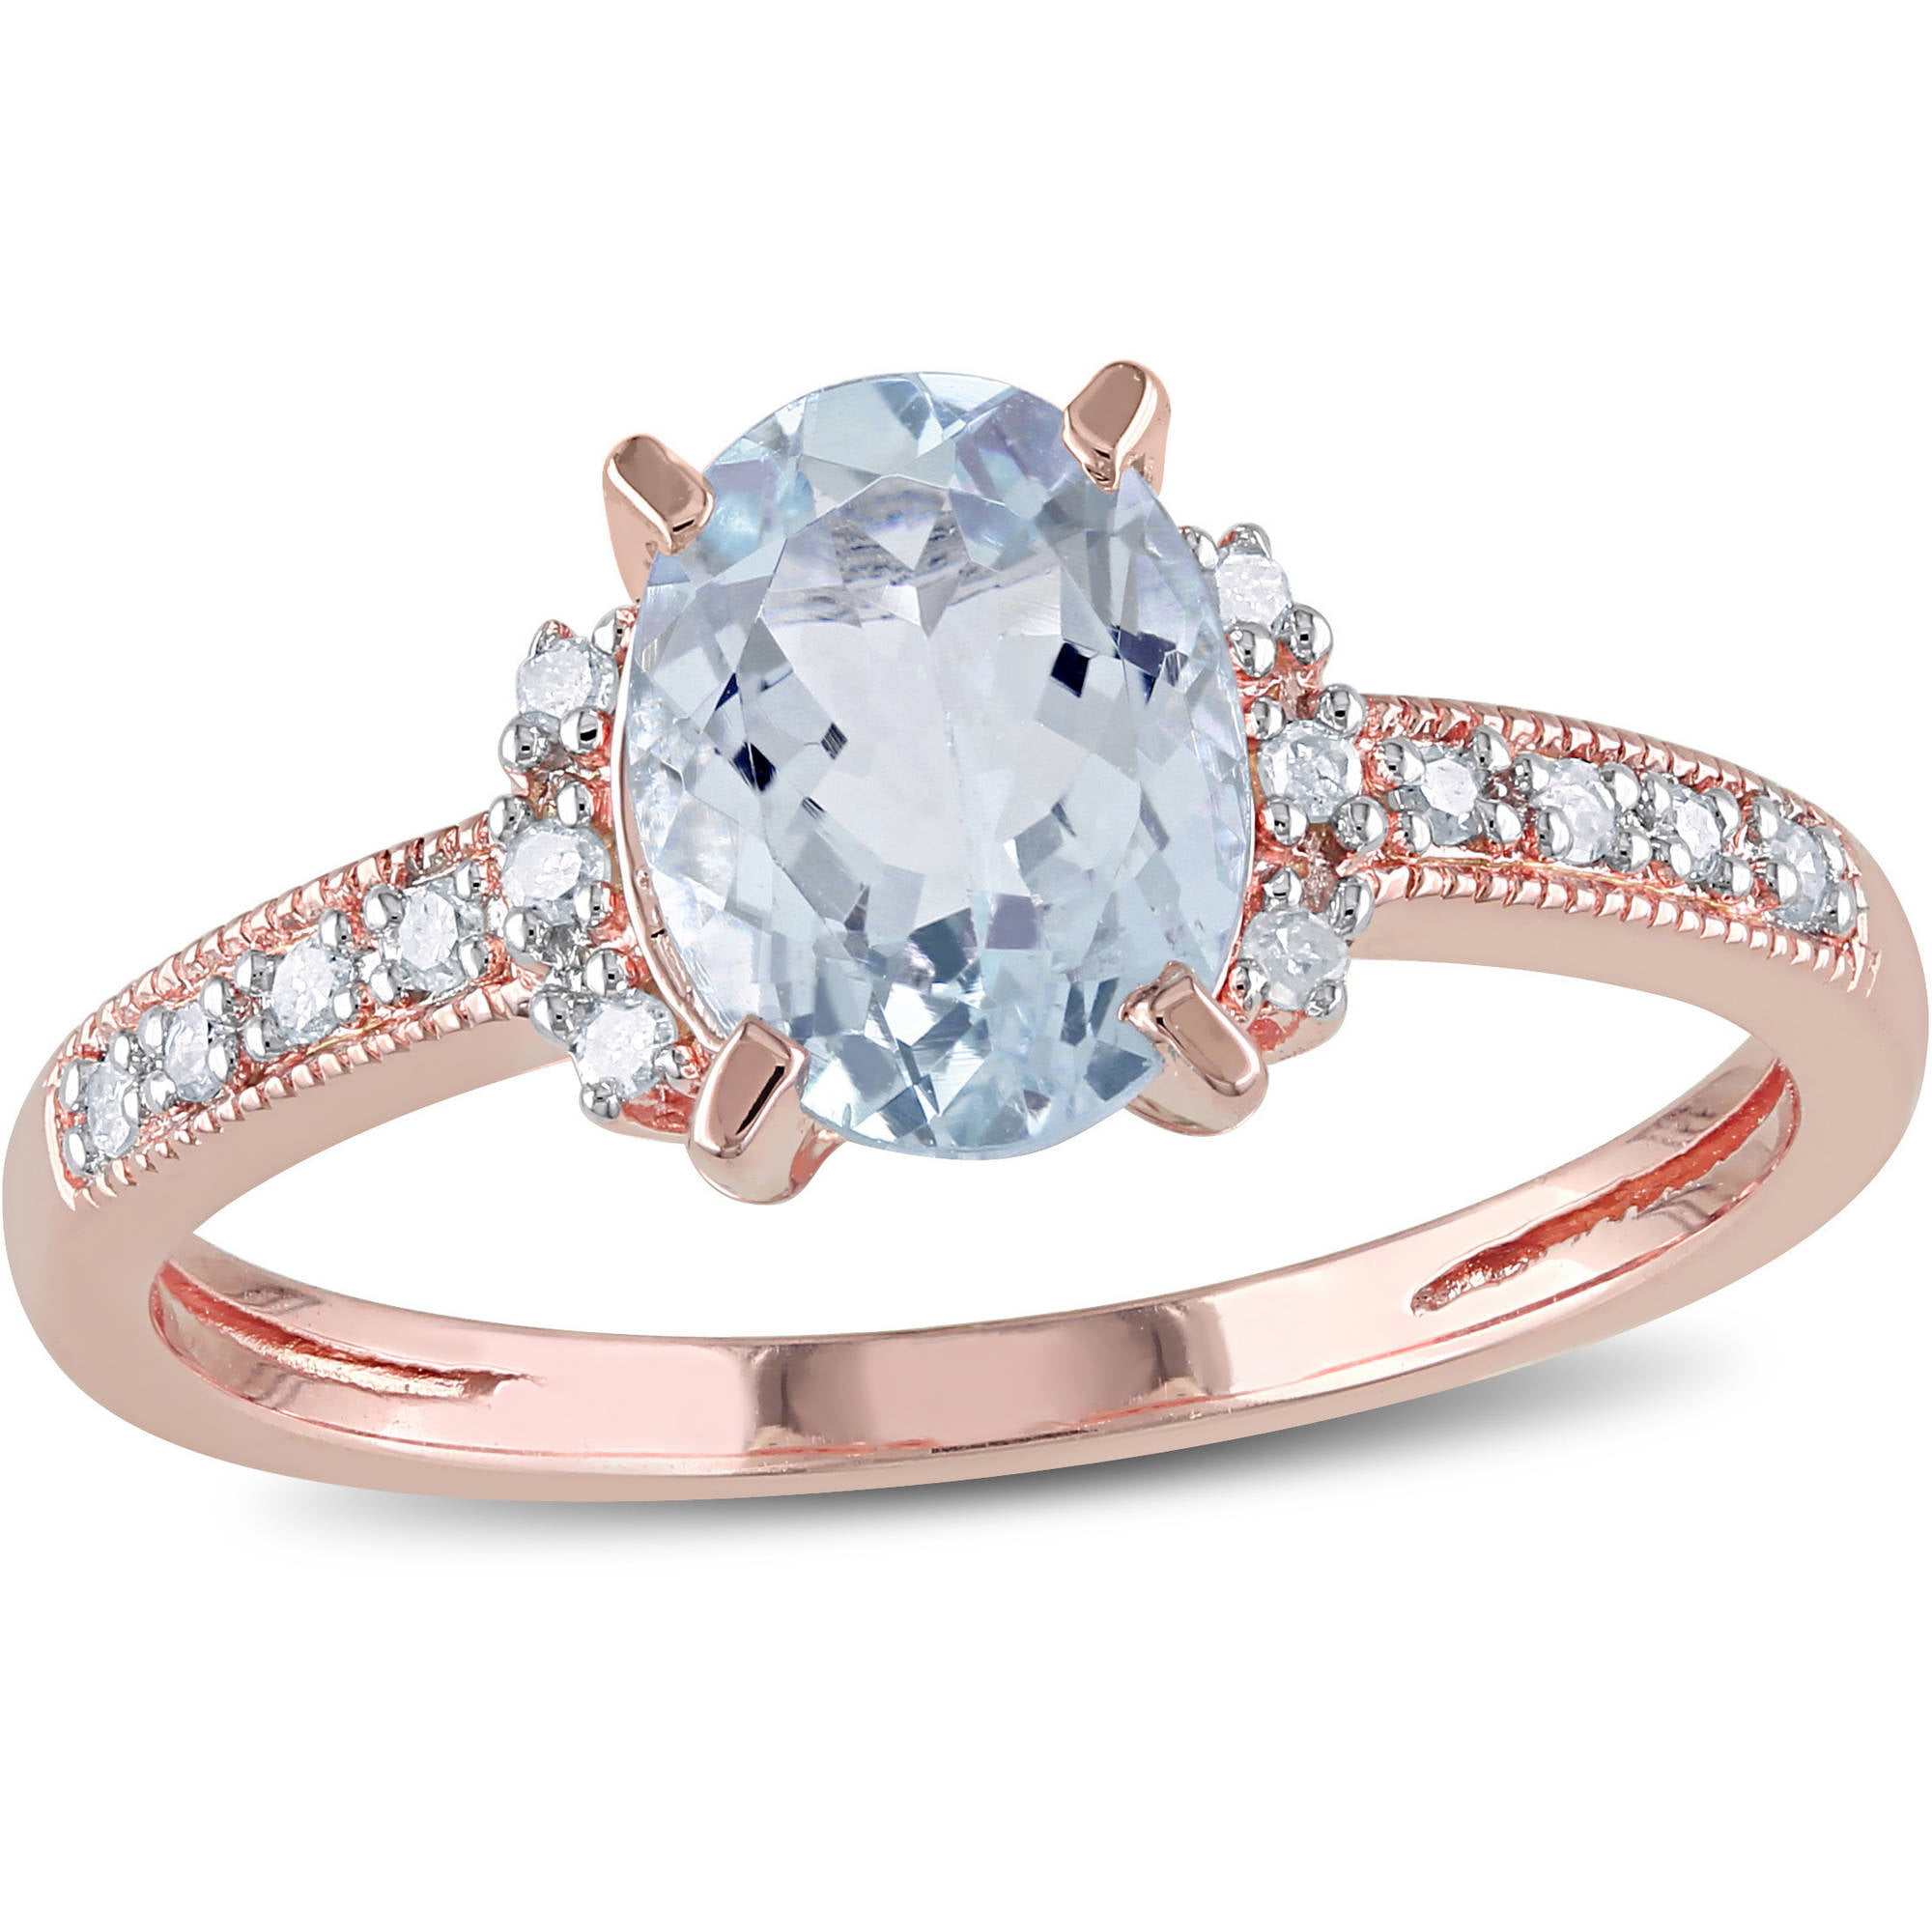 1 Carat T.G.W. Aquamarine and Diamond-Accent Rose Rhodium-Plated Sterling Silver Cocktail Ring by Miabella